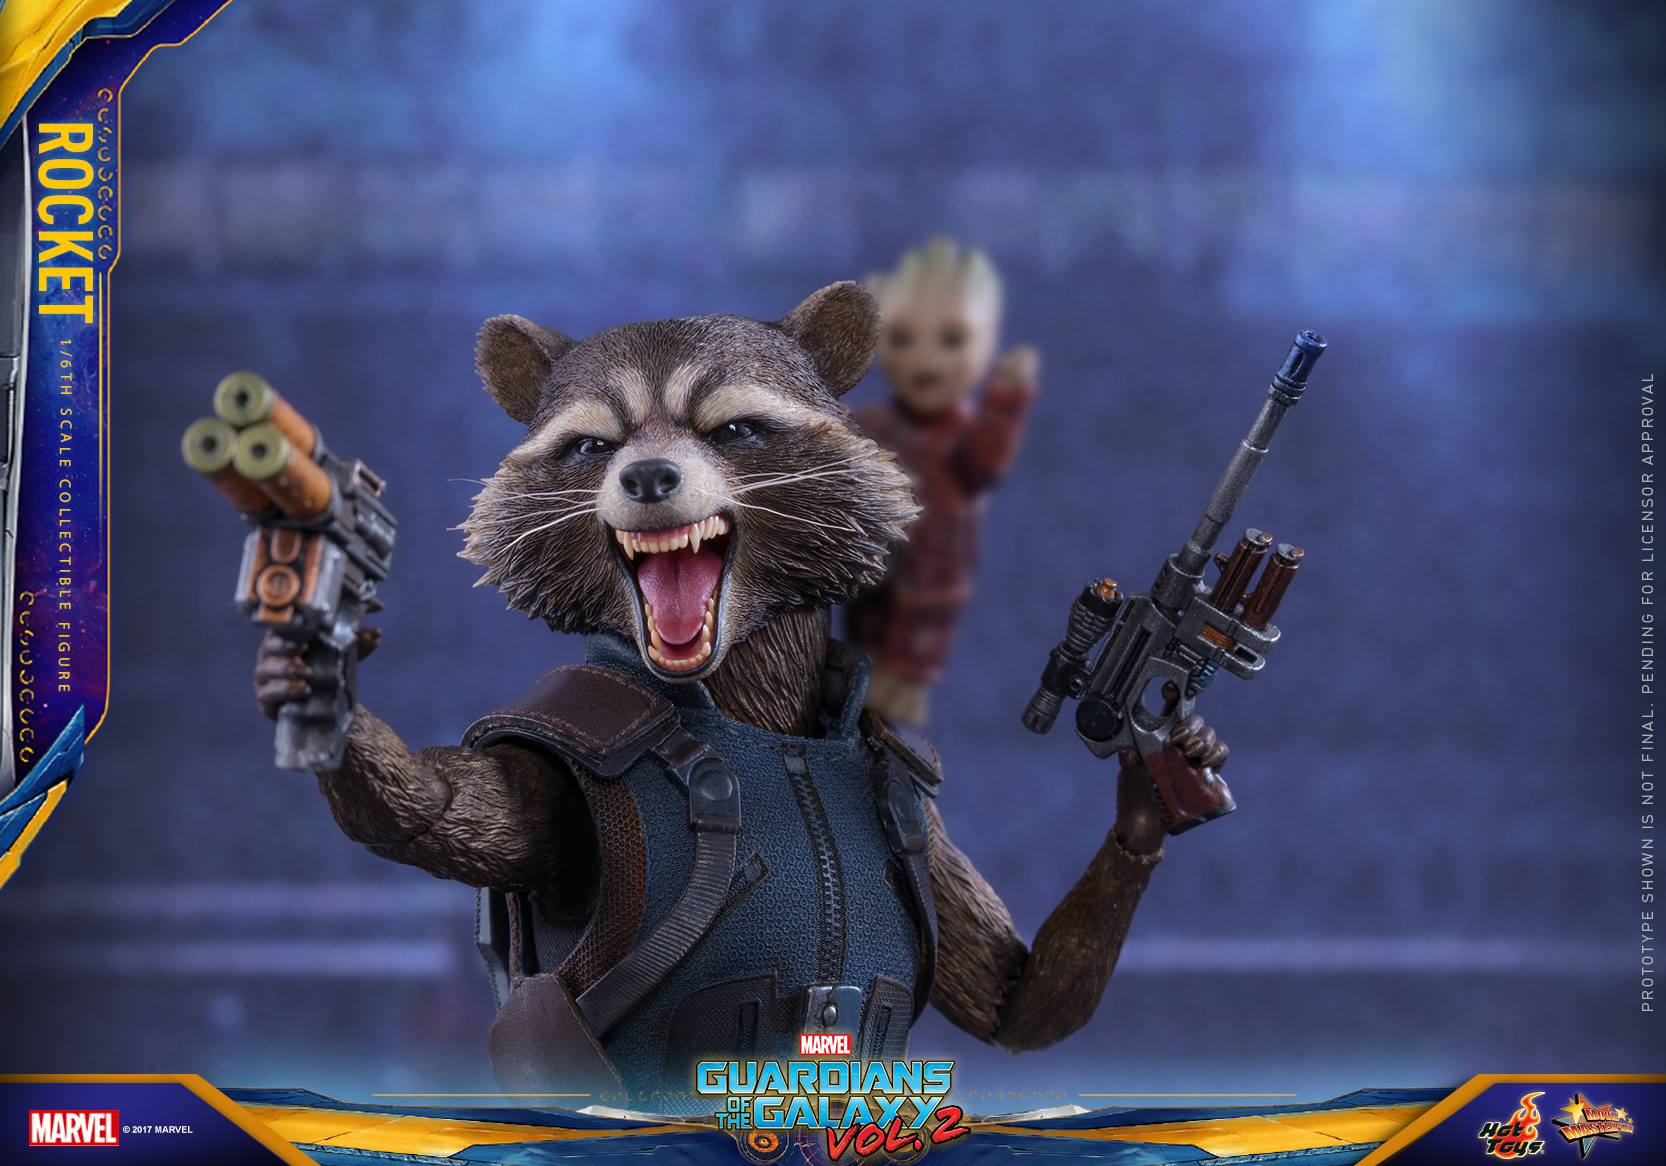 Rocket Raccoon Hot Toy From Guardians Of The Galaxy Vol 2 Super Deluxe Vinyl Figure 1 6th Scale Collectible